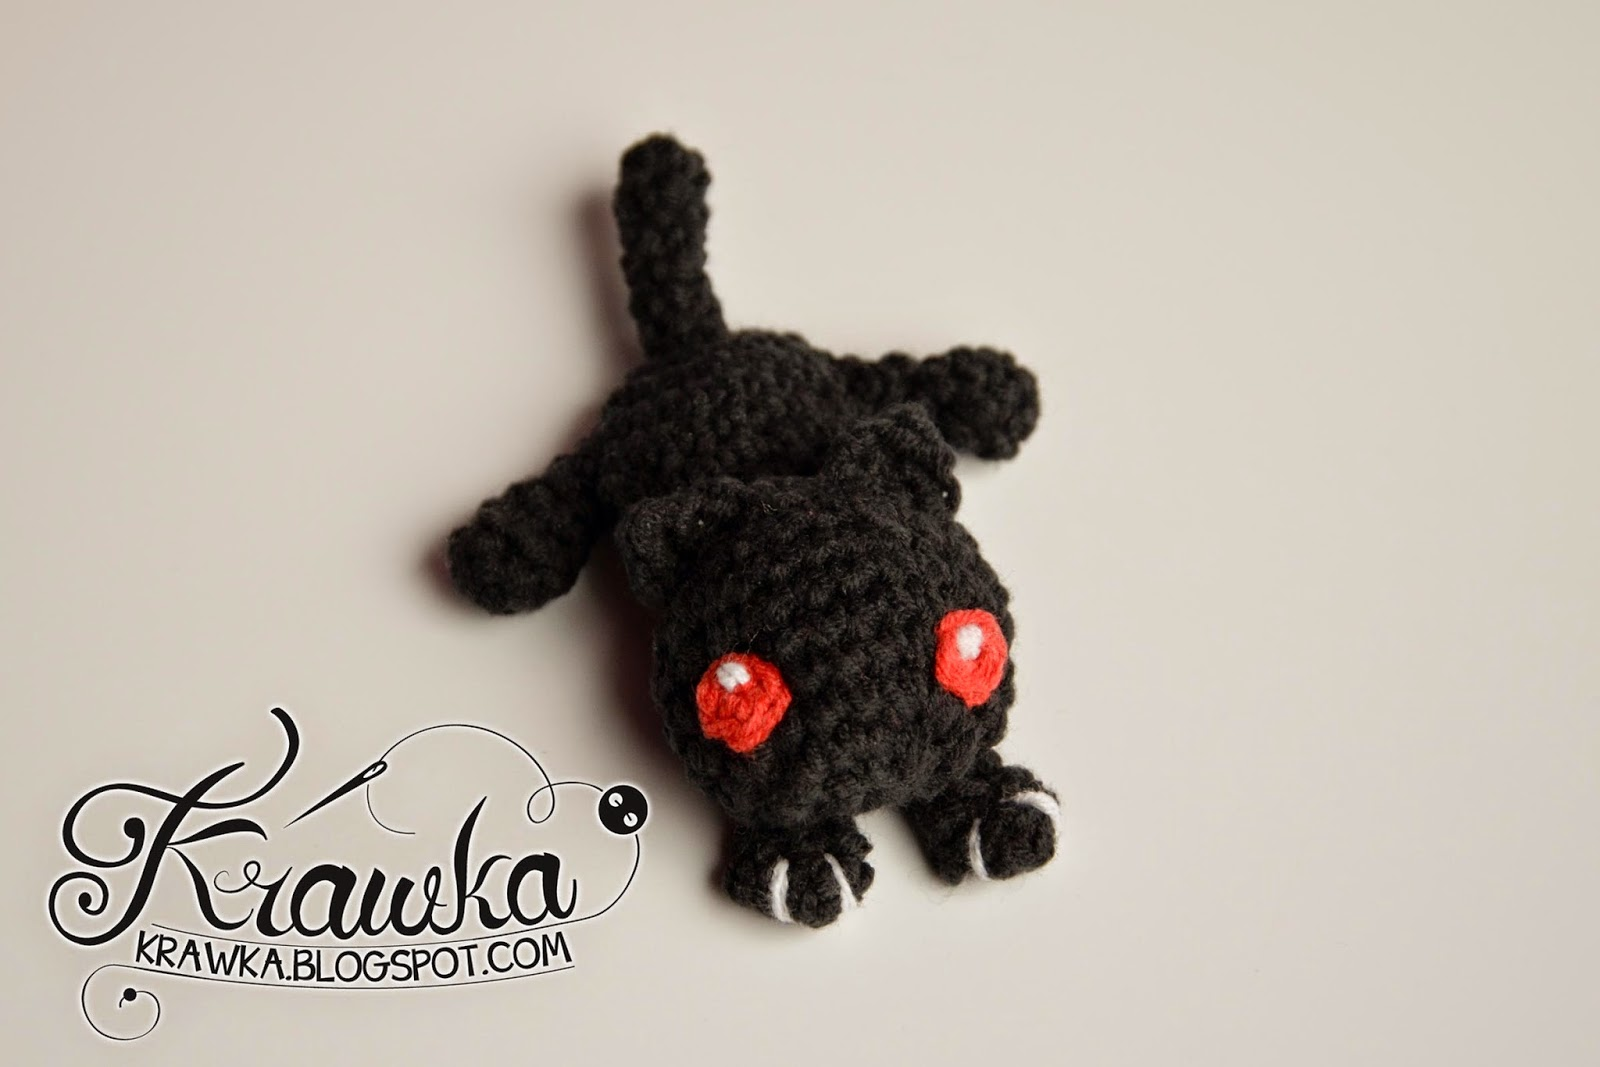 Krawka: Little black cat / demonic kitten - Crochet hair accessory with free pattern